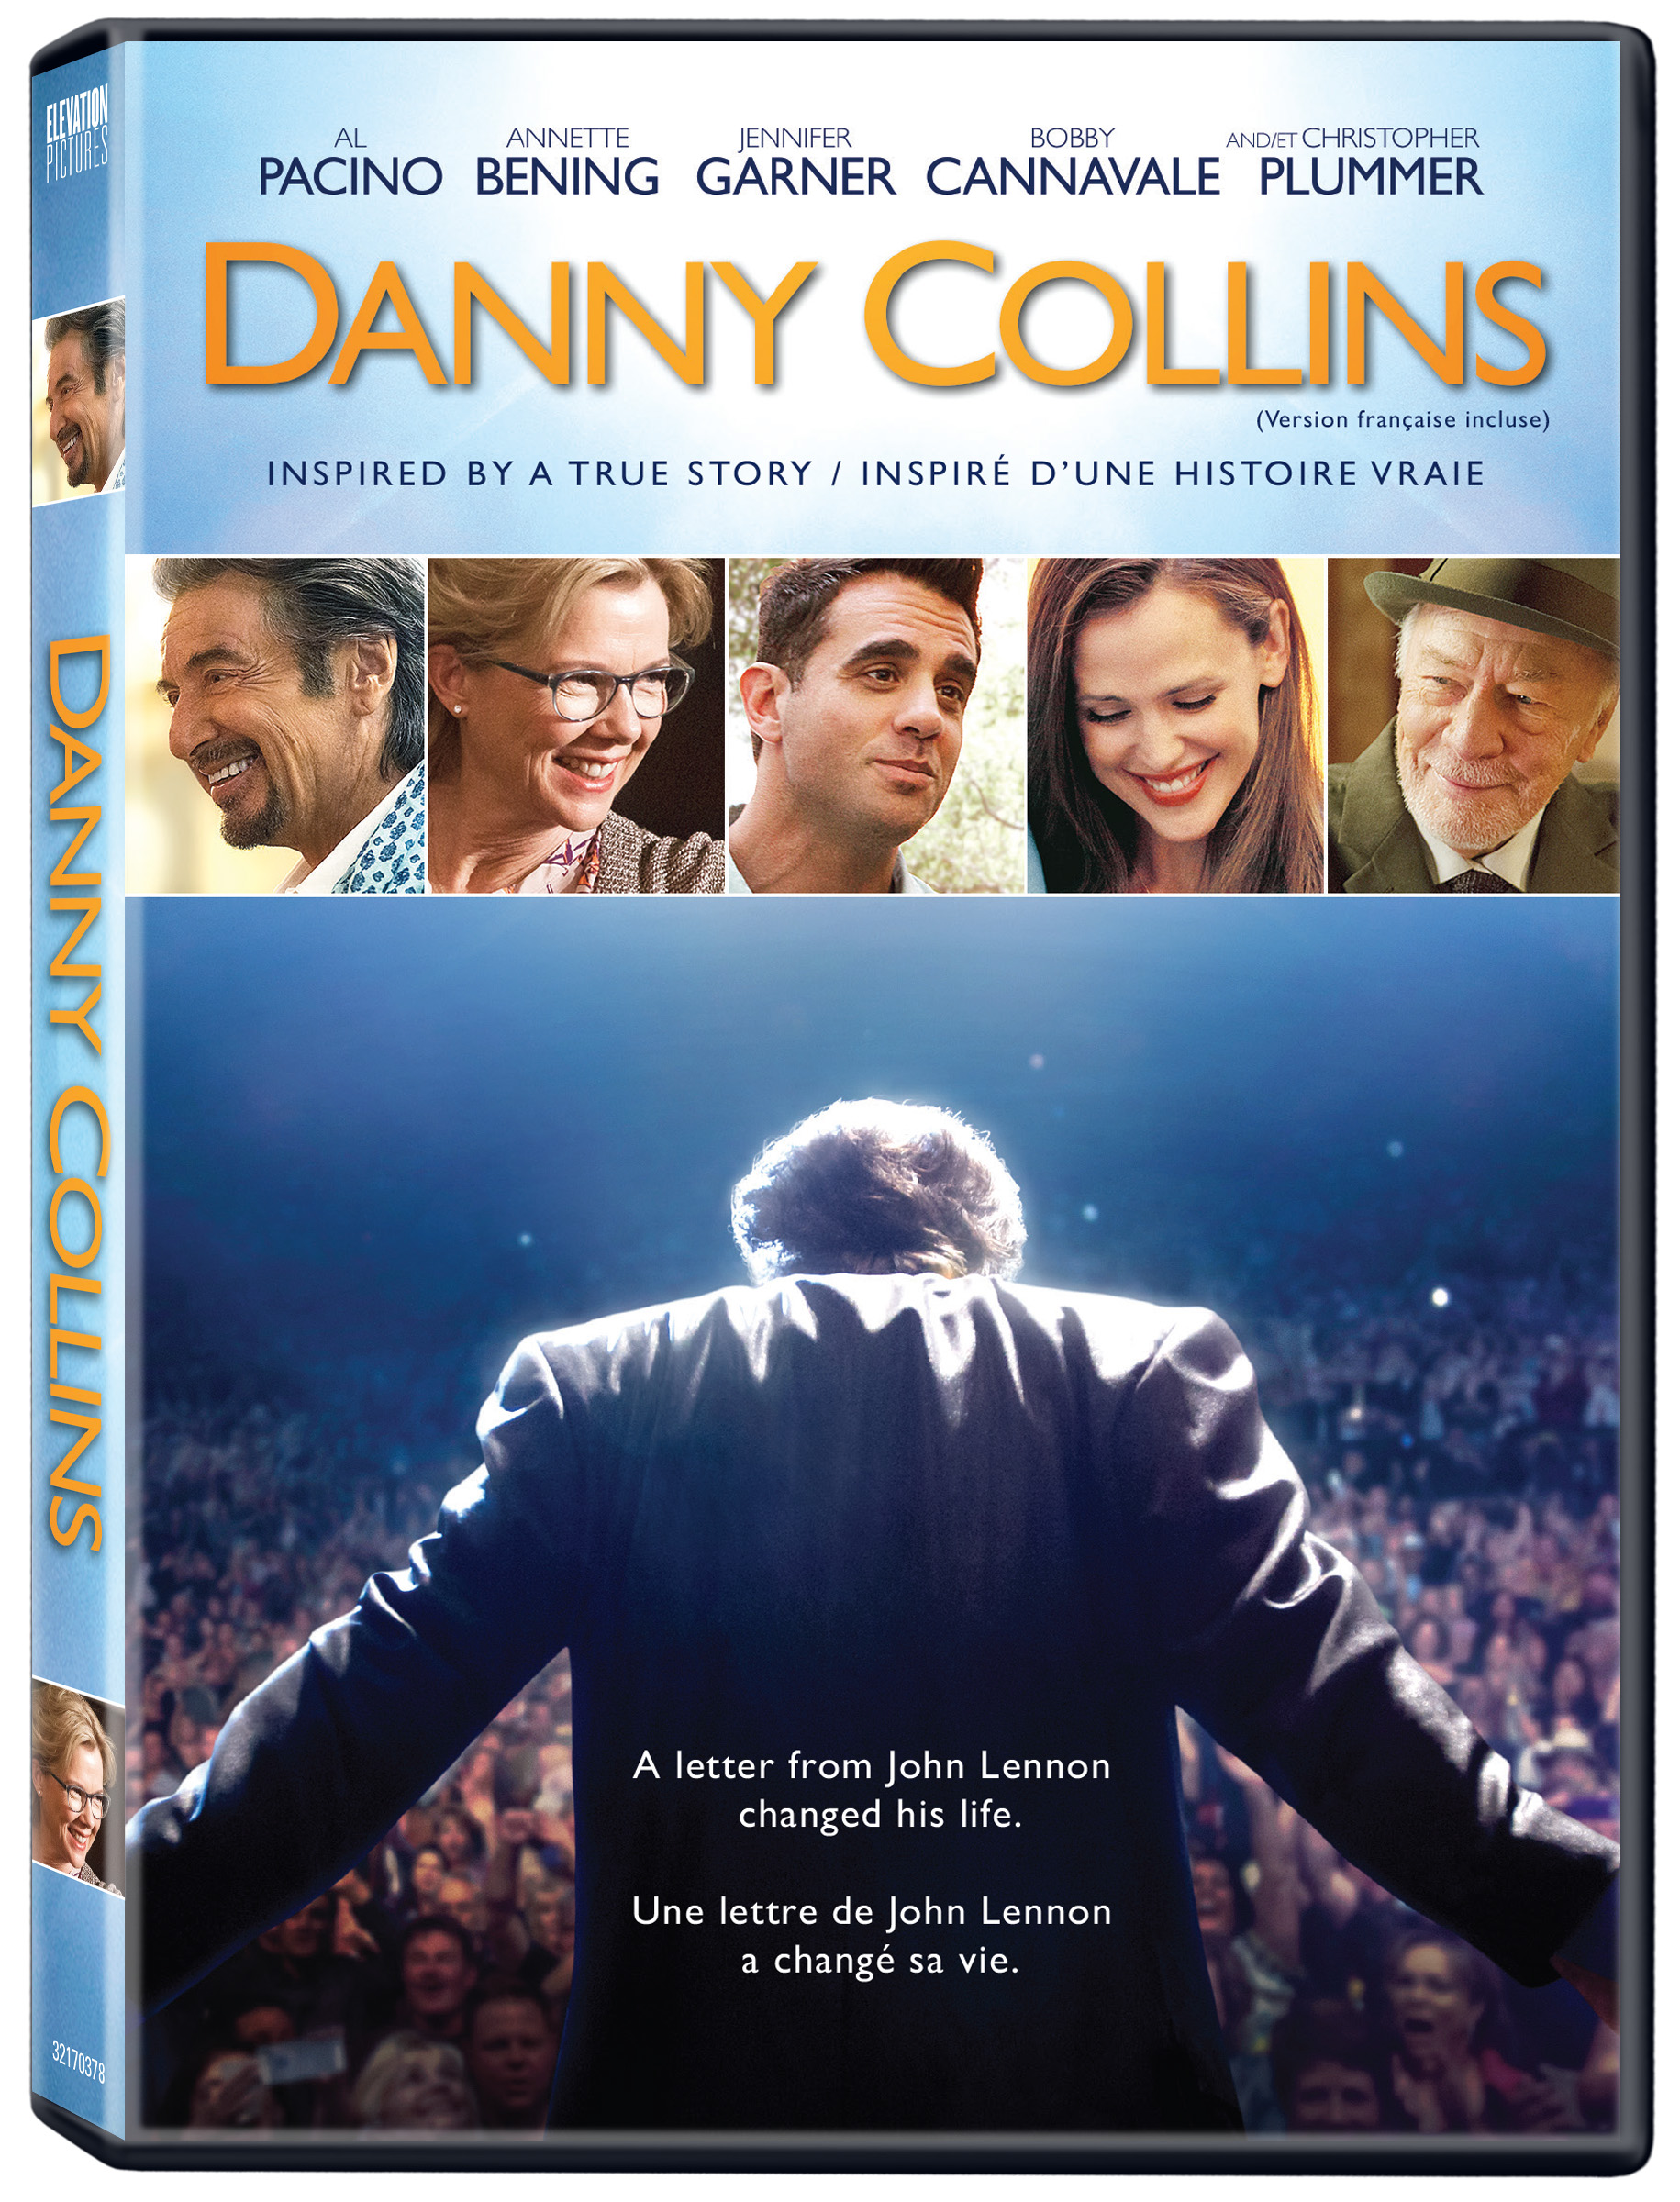 Dvd Release Danny Collins One Movie Our Views